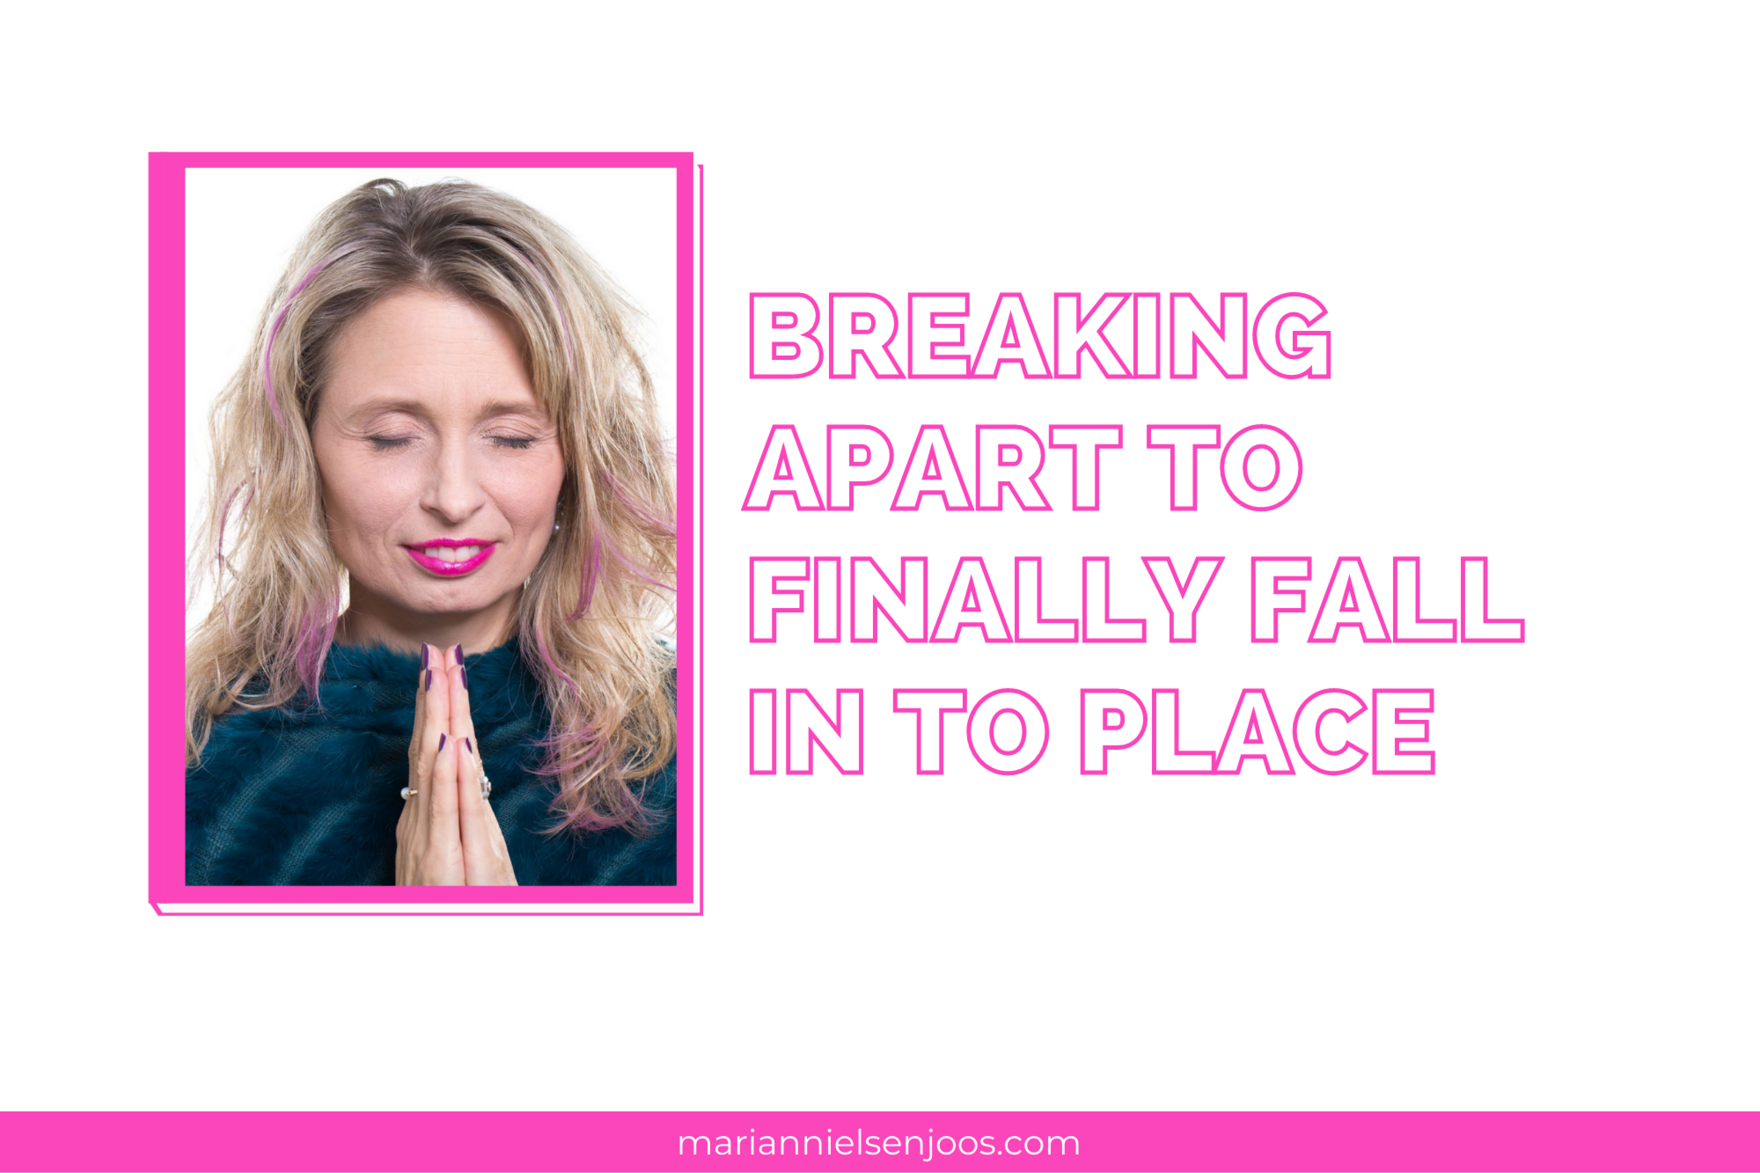 breaking apart to finally fall in to place